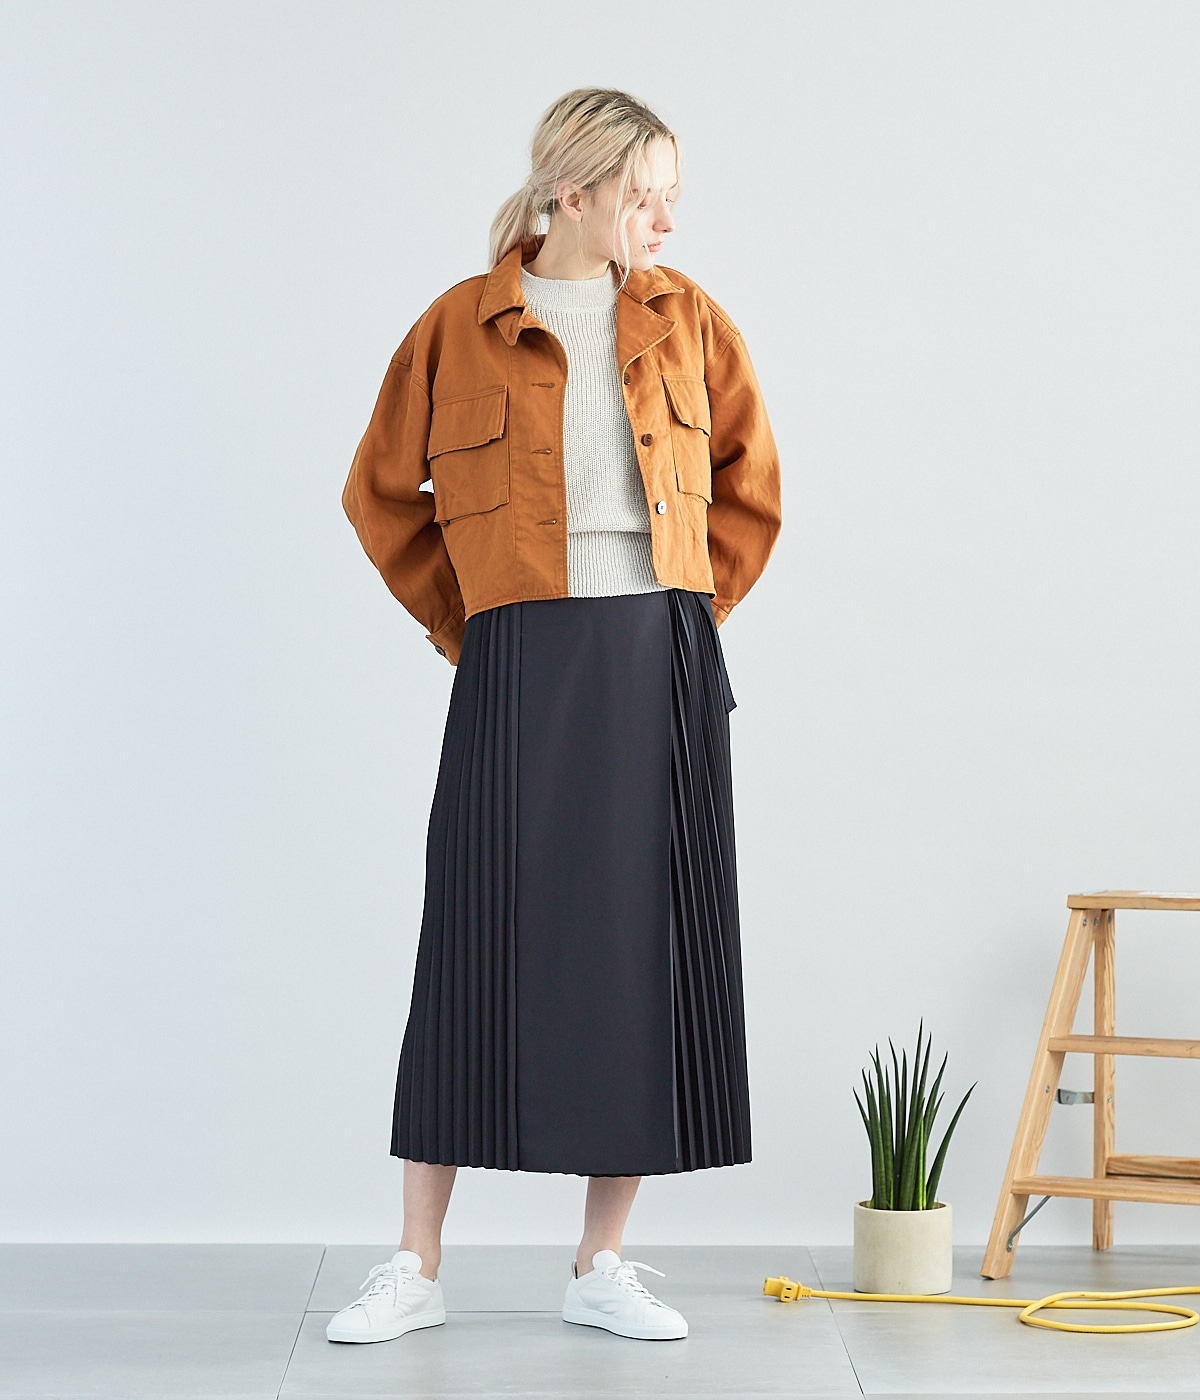 SPRING OUTER STYLE